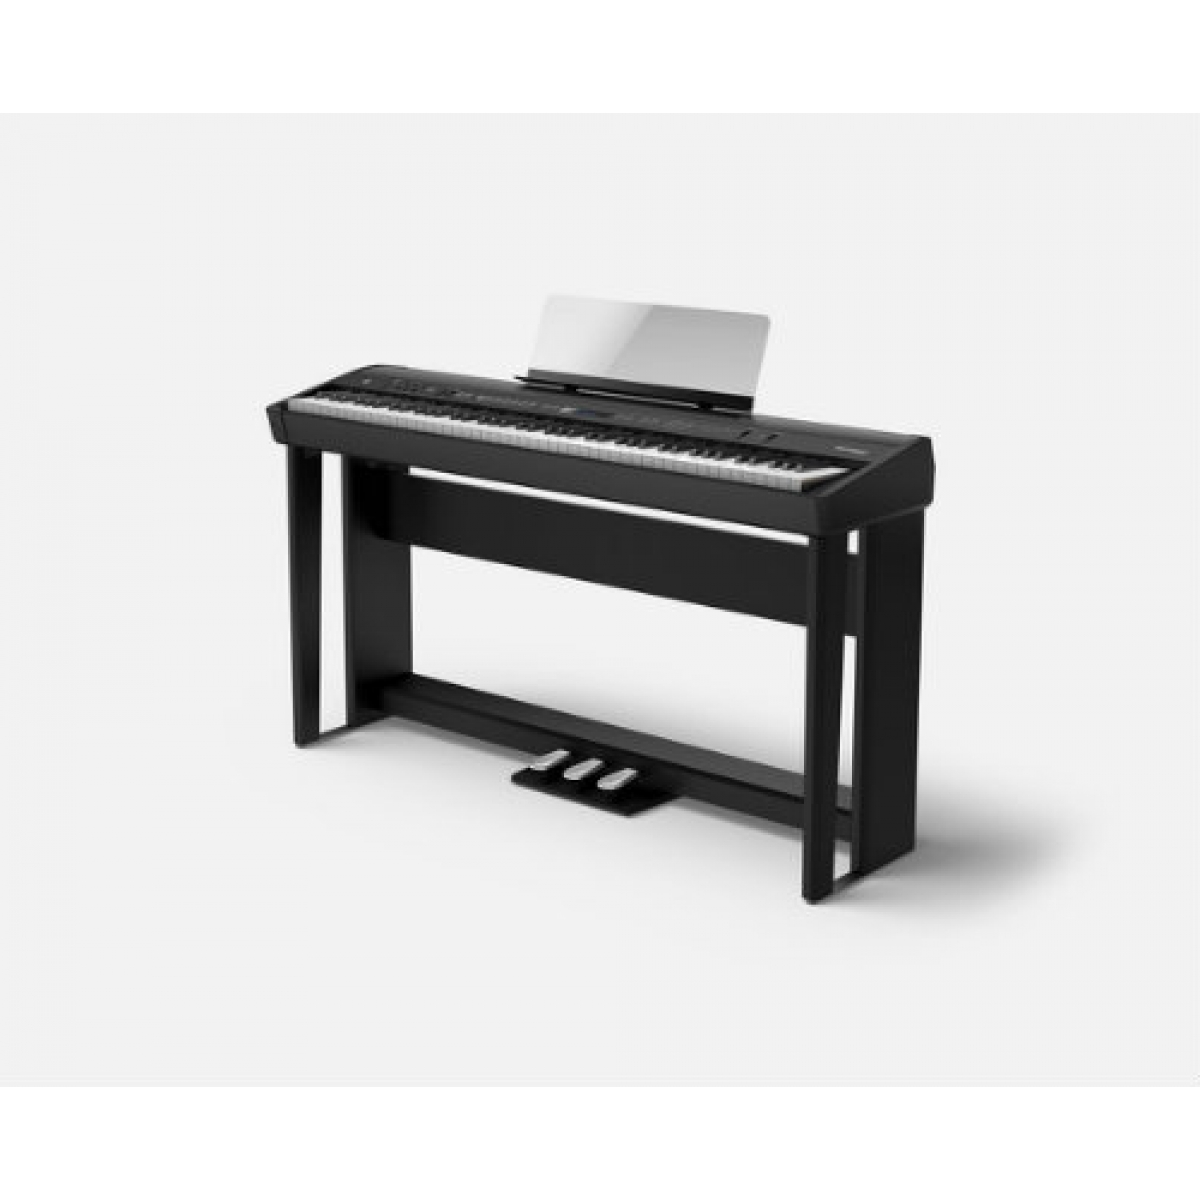 roland fp90 digital piano in black fp90bk at promenade music. Black Bedroom Furniture Sets. Home Design Ideas